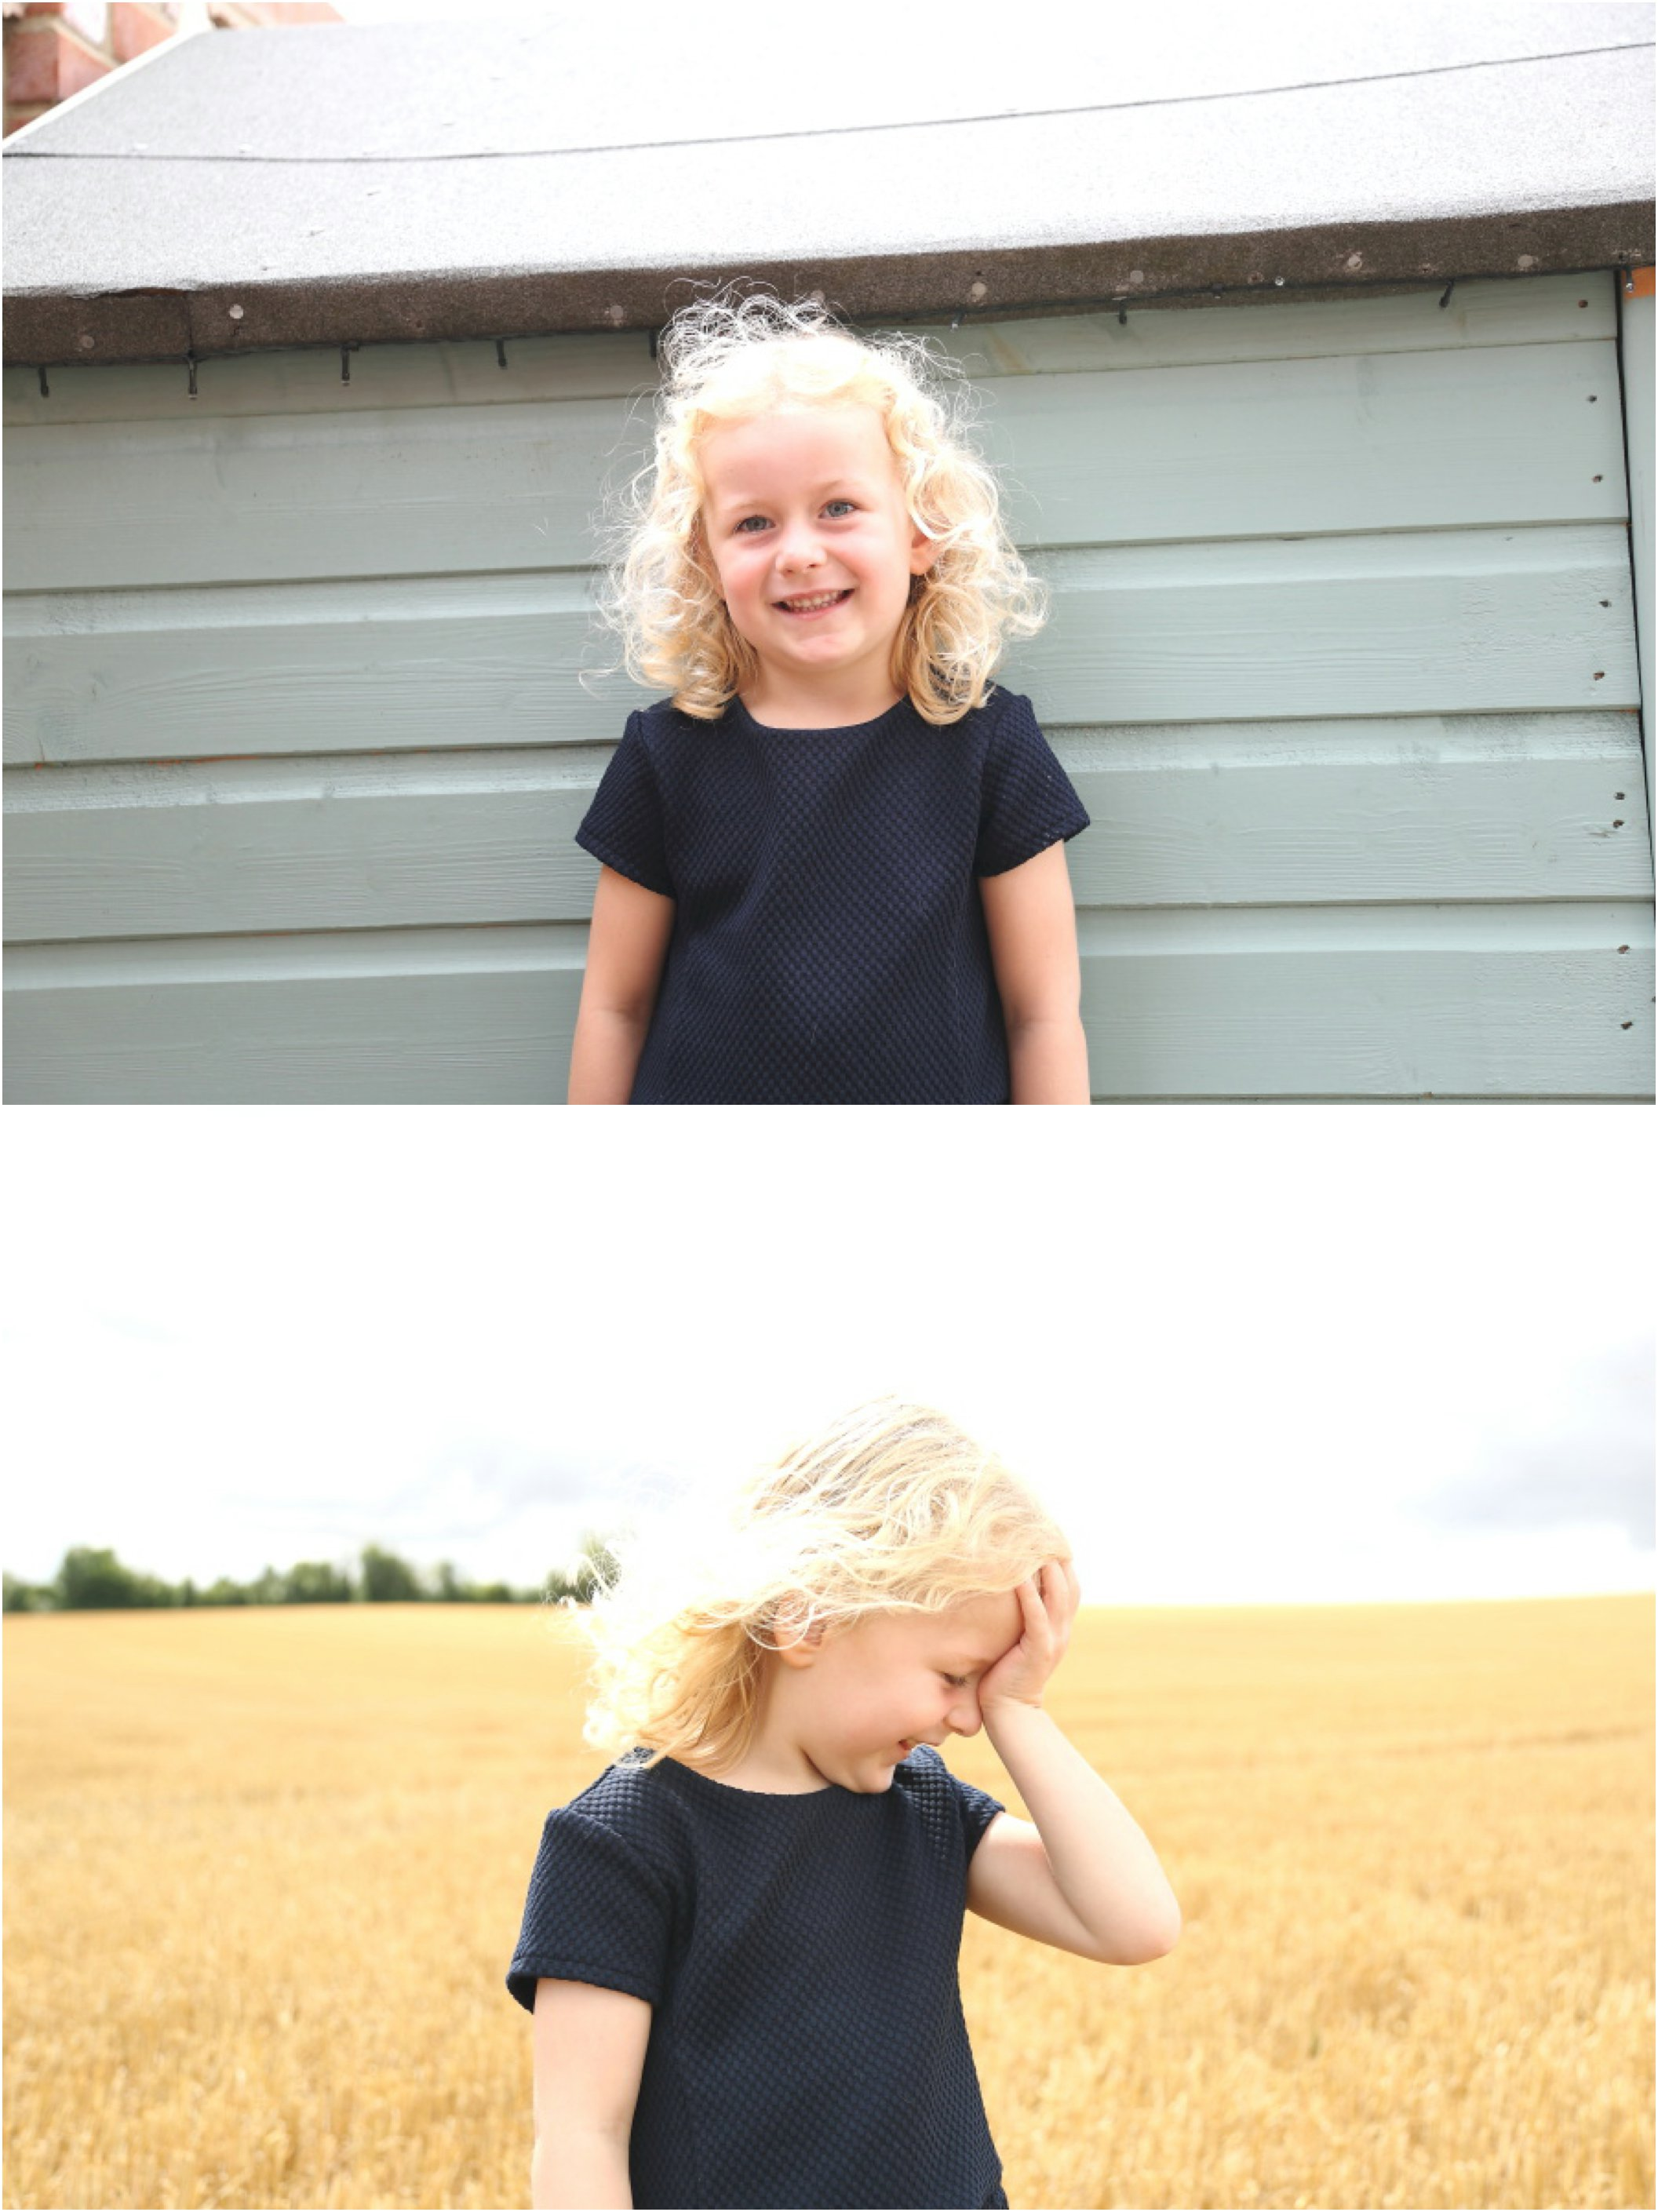 fun bright portrait session of blond little girl in Kedington, Suffolk